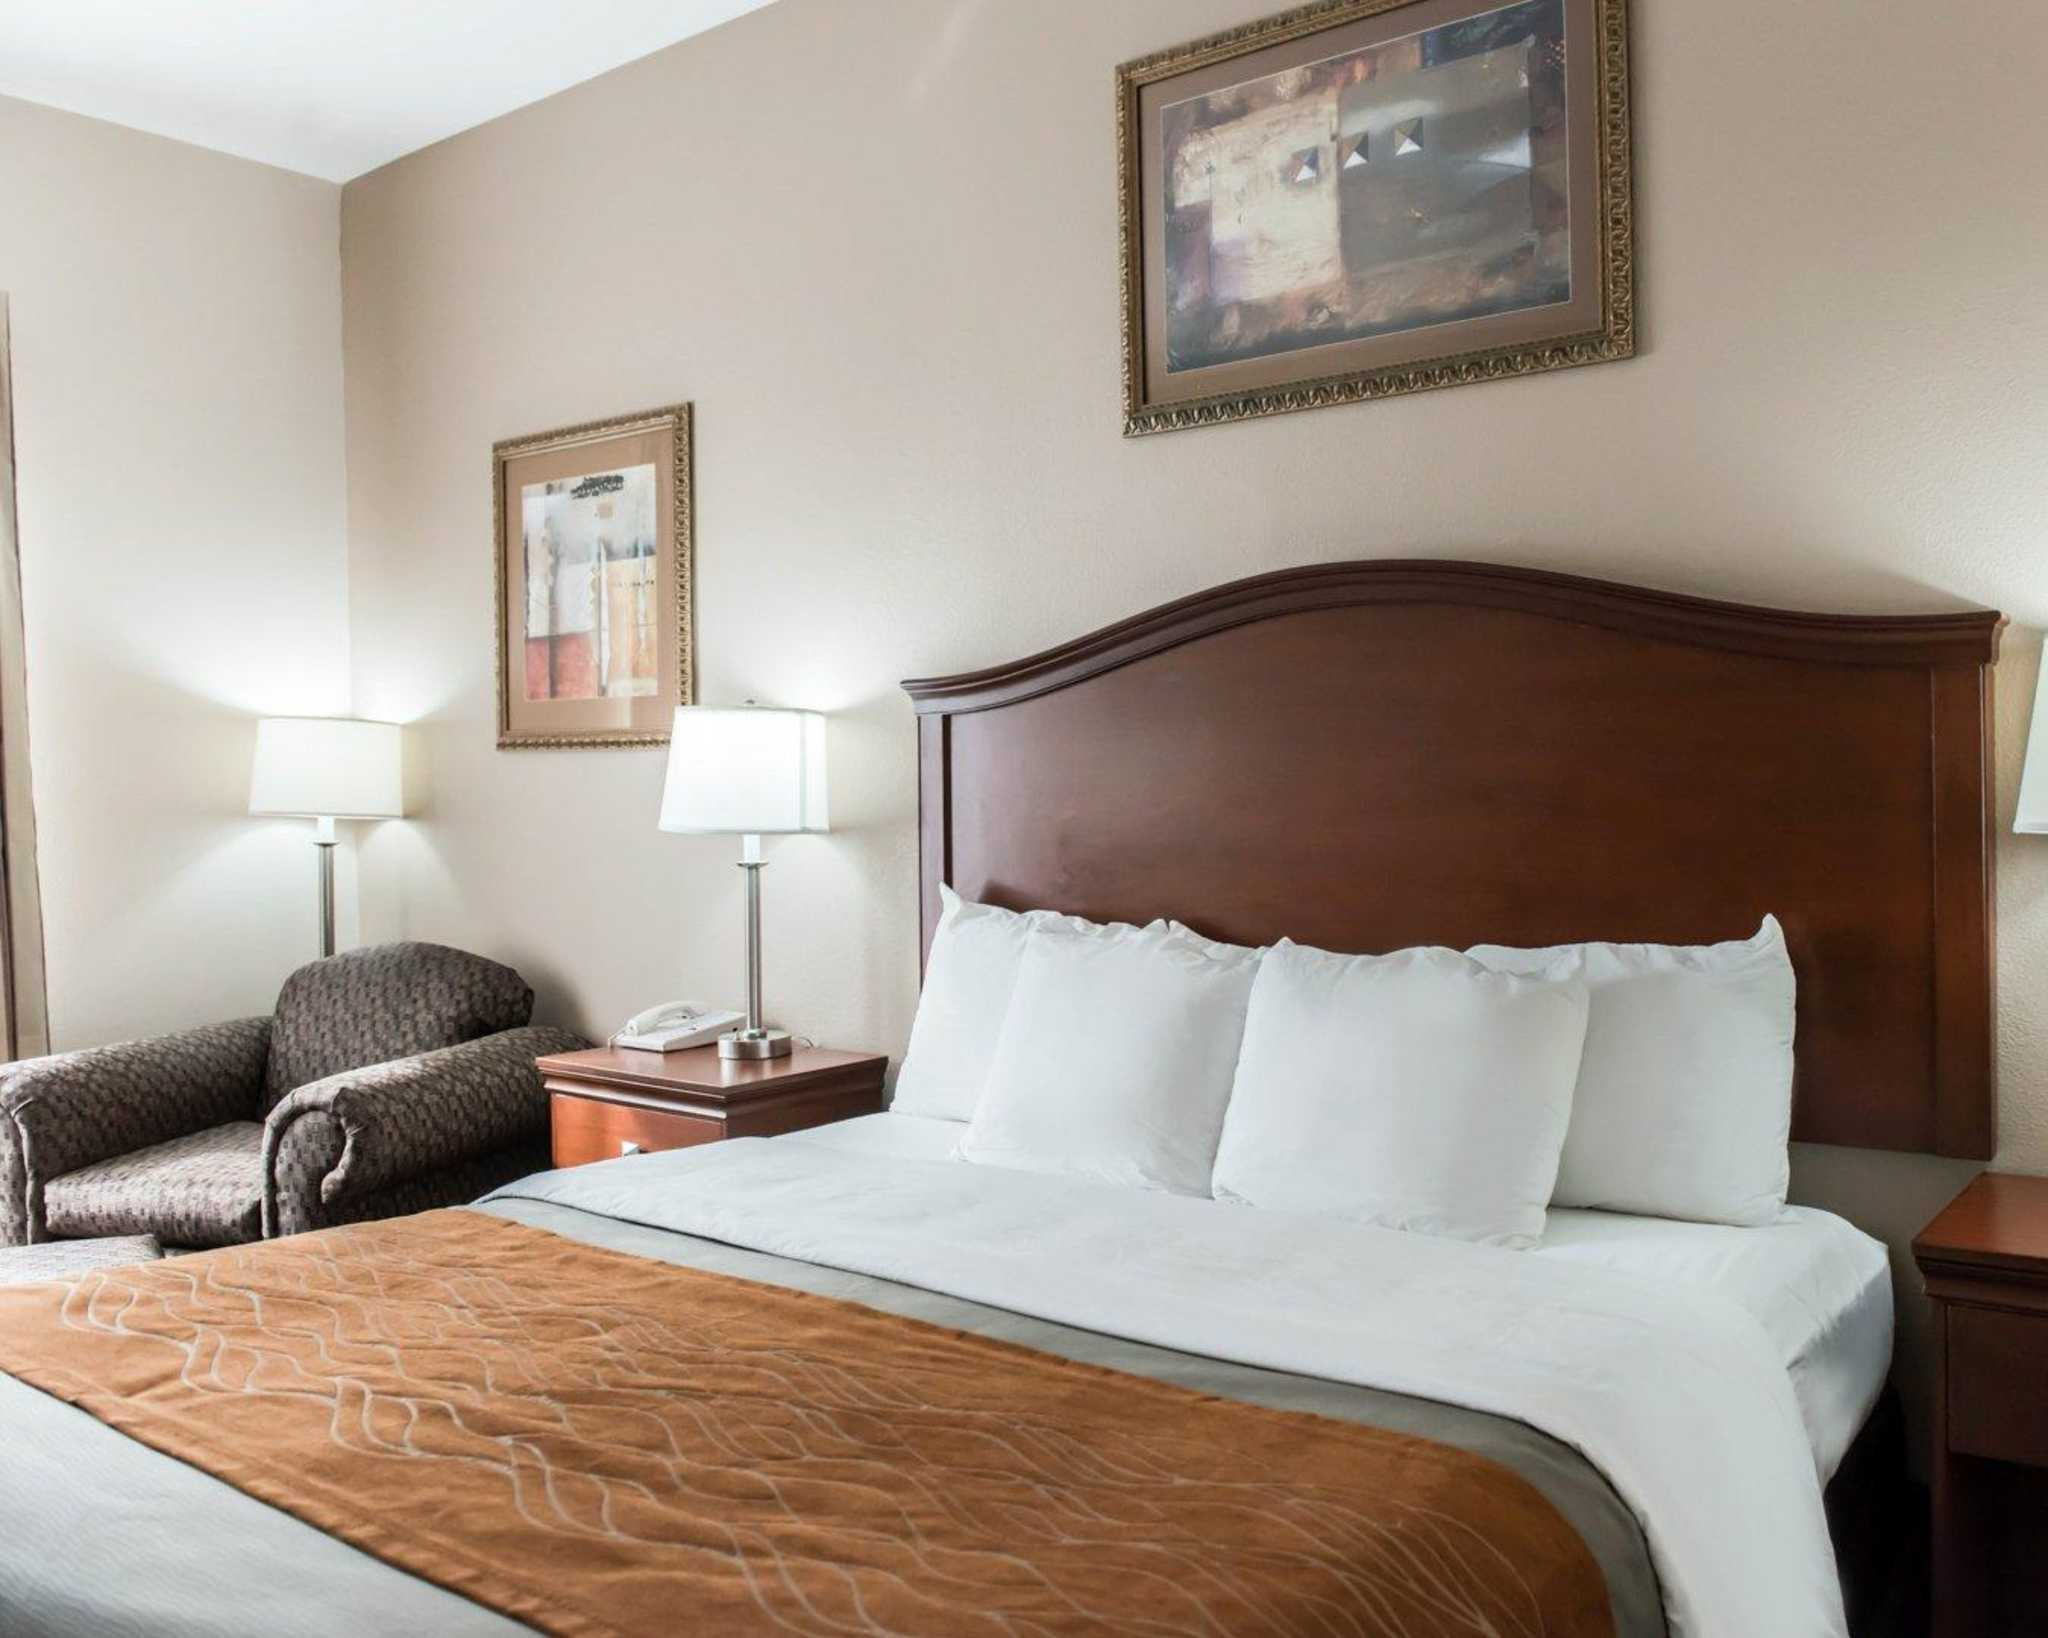 Comfort Inn & Suites Midway - Tallahassee West image 0